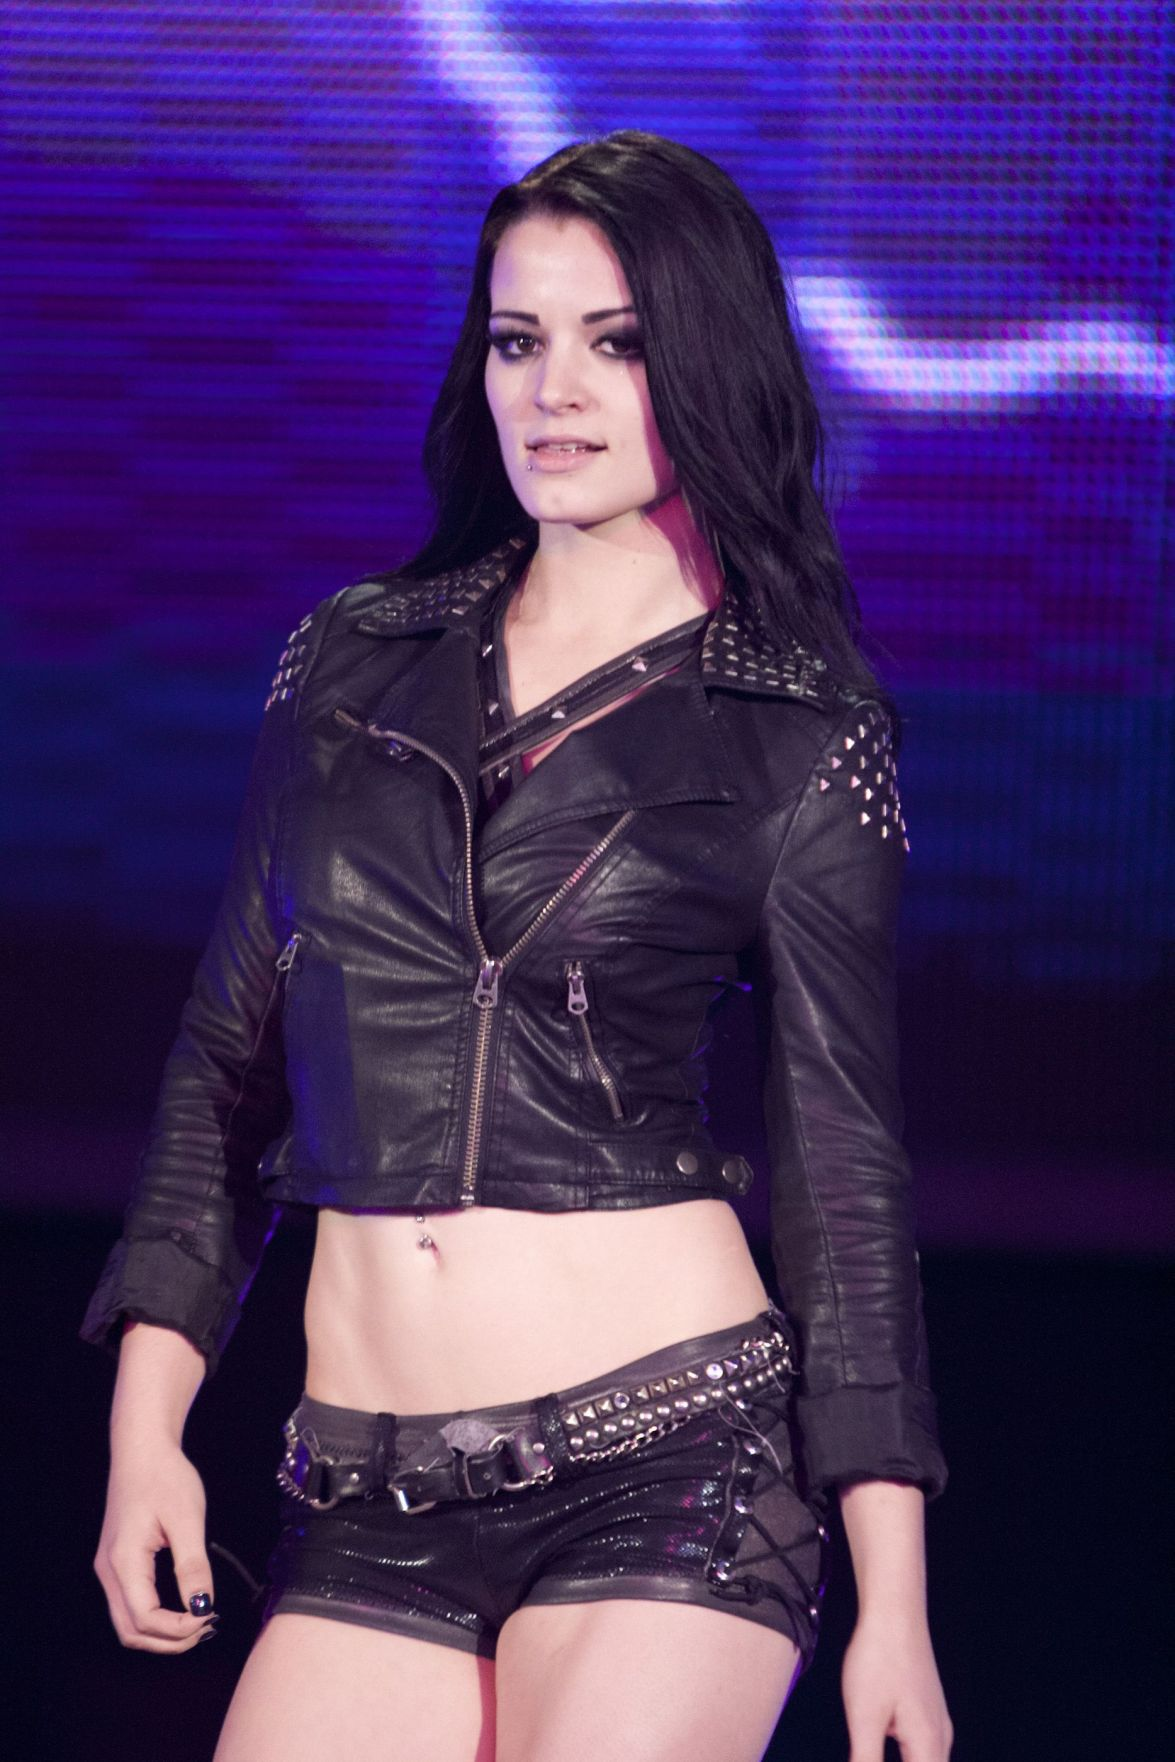 Paige Wwe Nudes Instagram, Is A Cute Sexy-3949